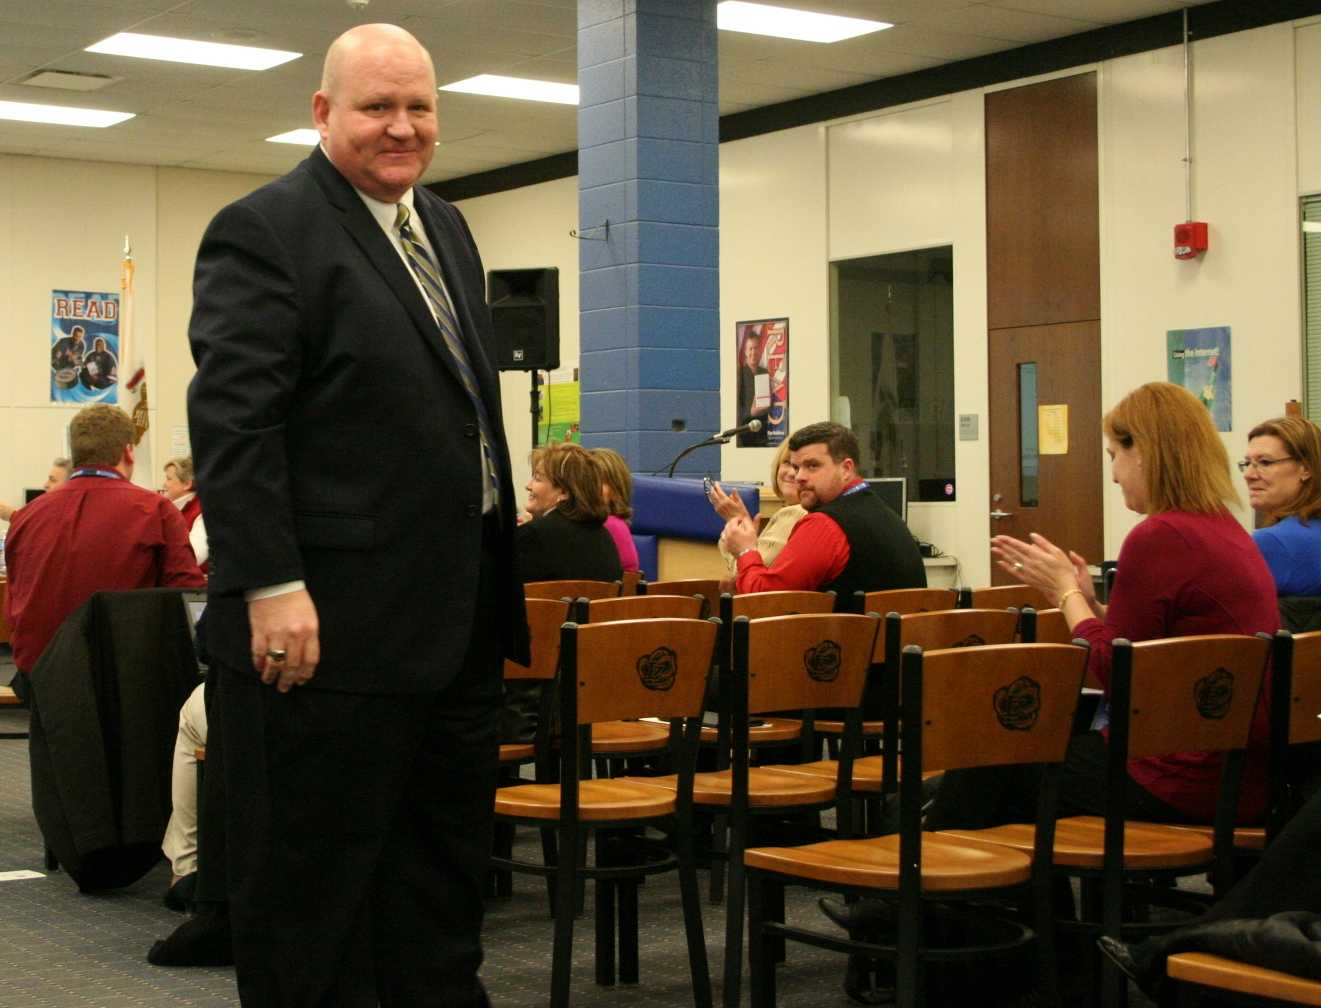 Nightlinger was introduced as the new LZHS principal at the recent School Board meeting.